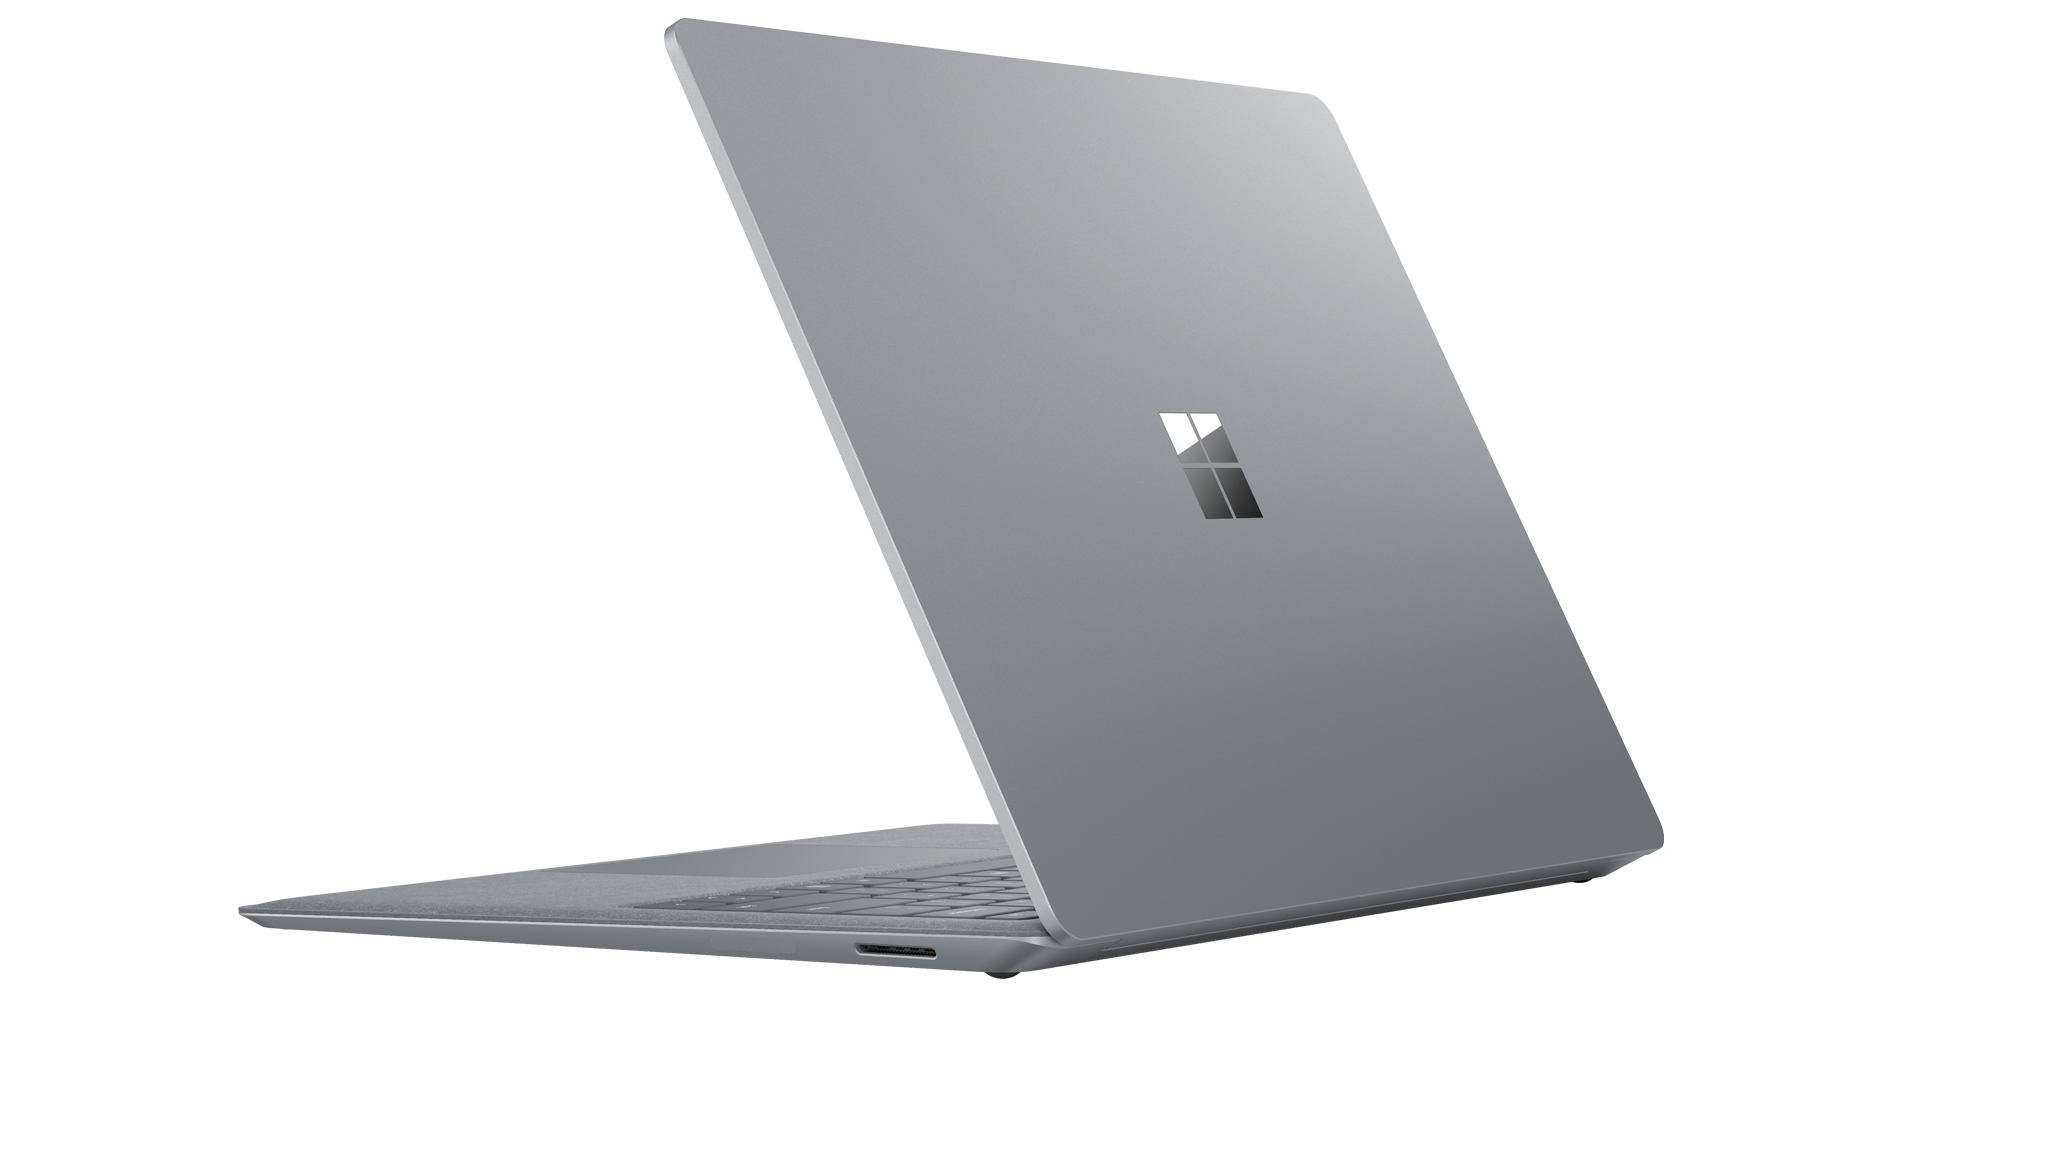 Surface Laptop 2 — widok z boku